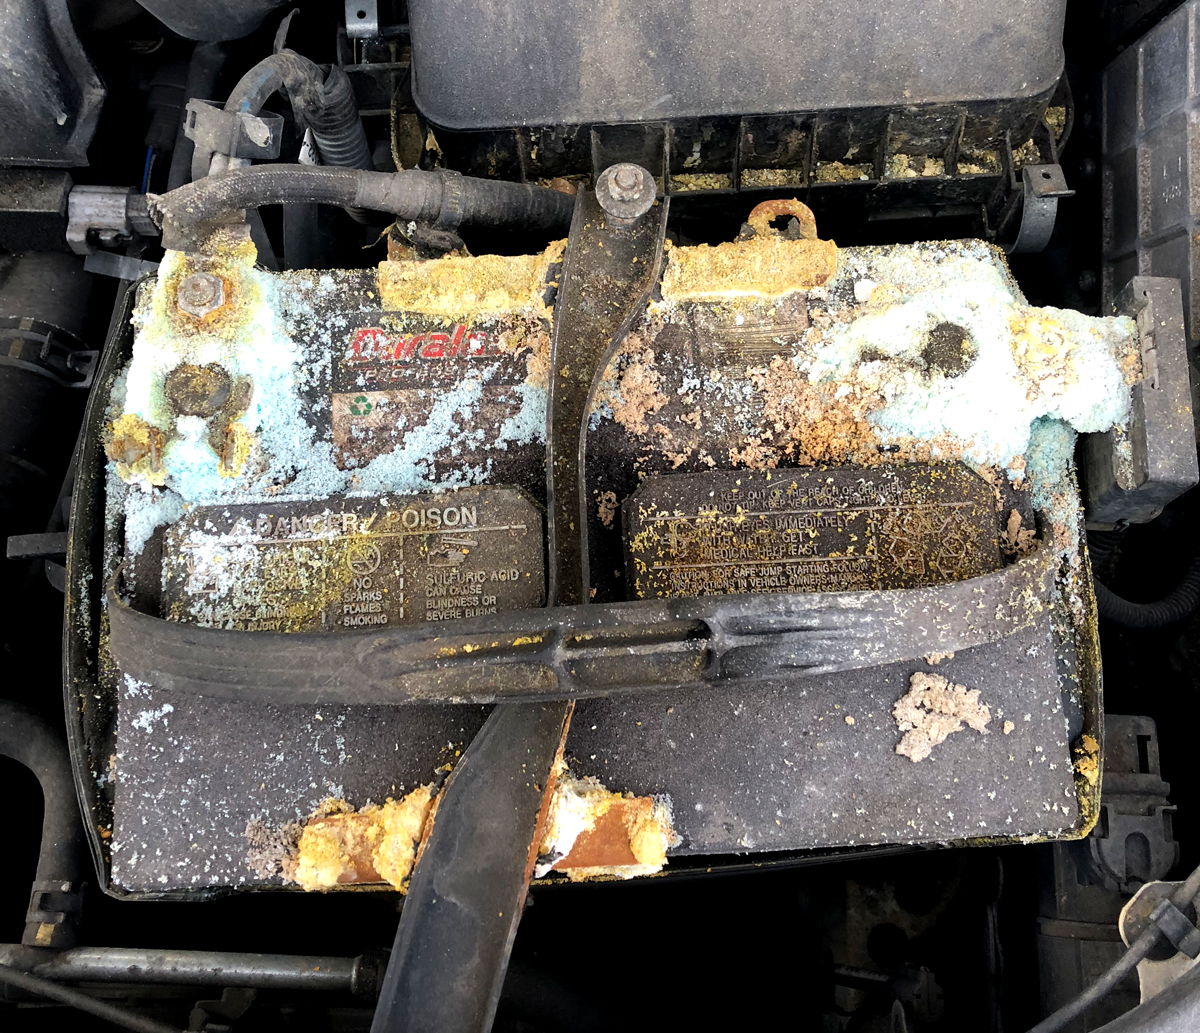 Dead corroded battery in car